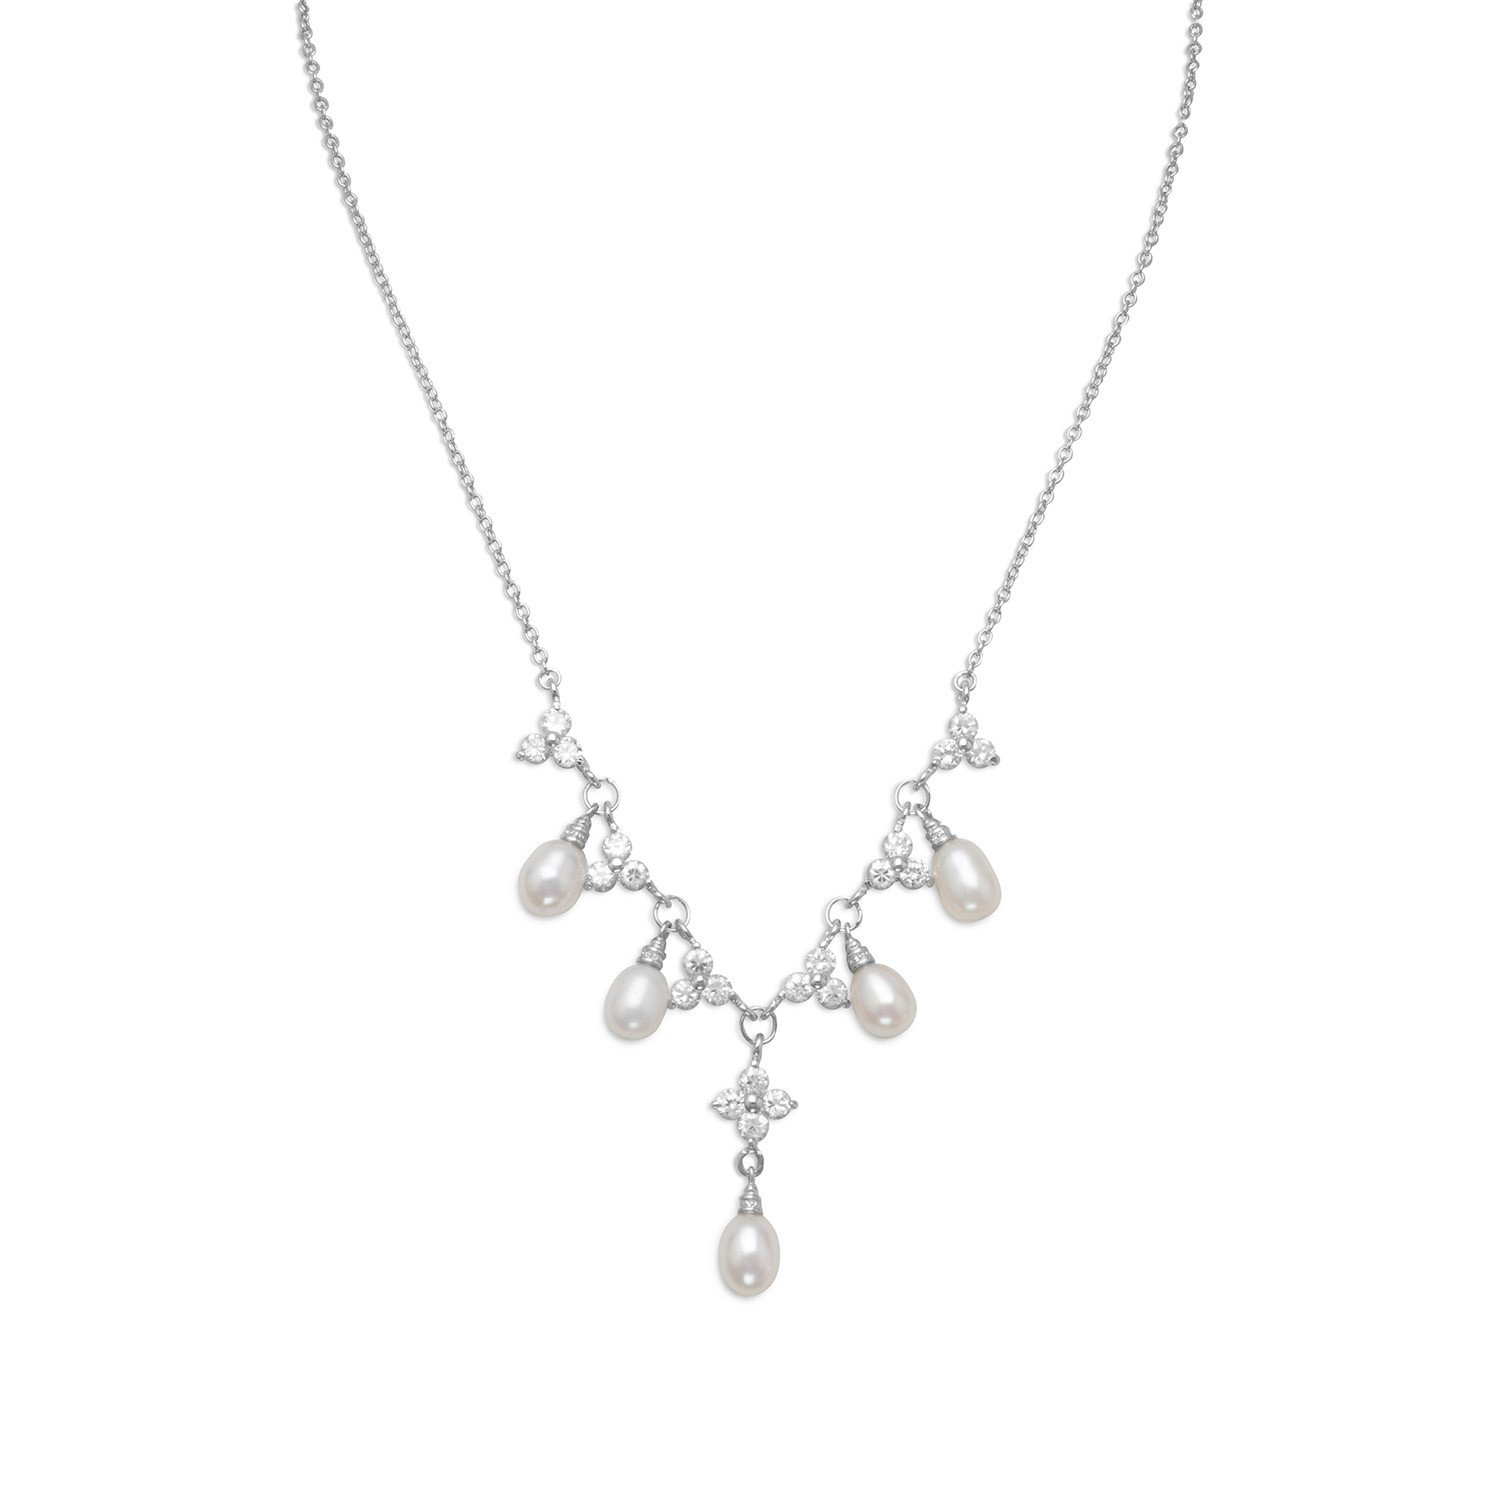 16″ + 2″ Rhodium Plated CZ Flower and Pearl Necklace